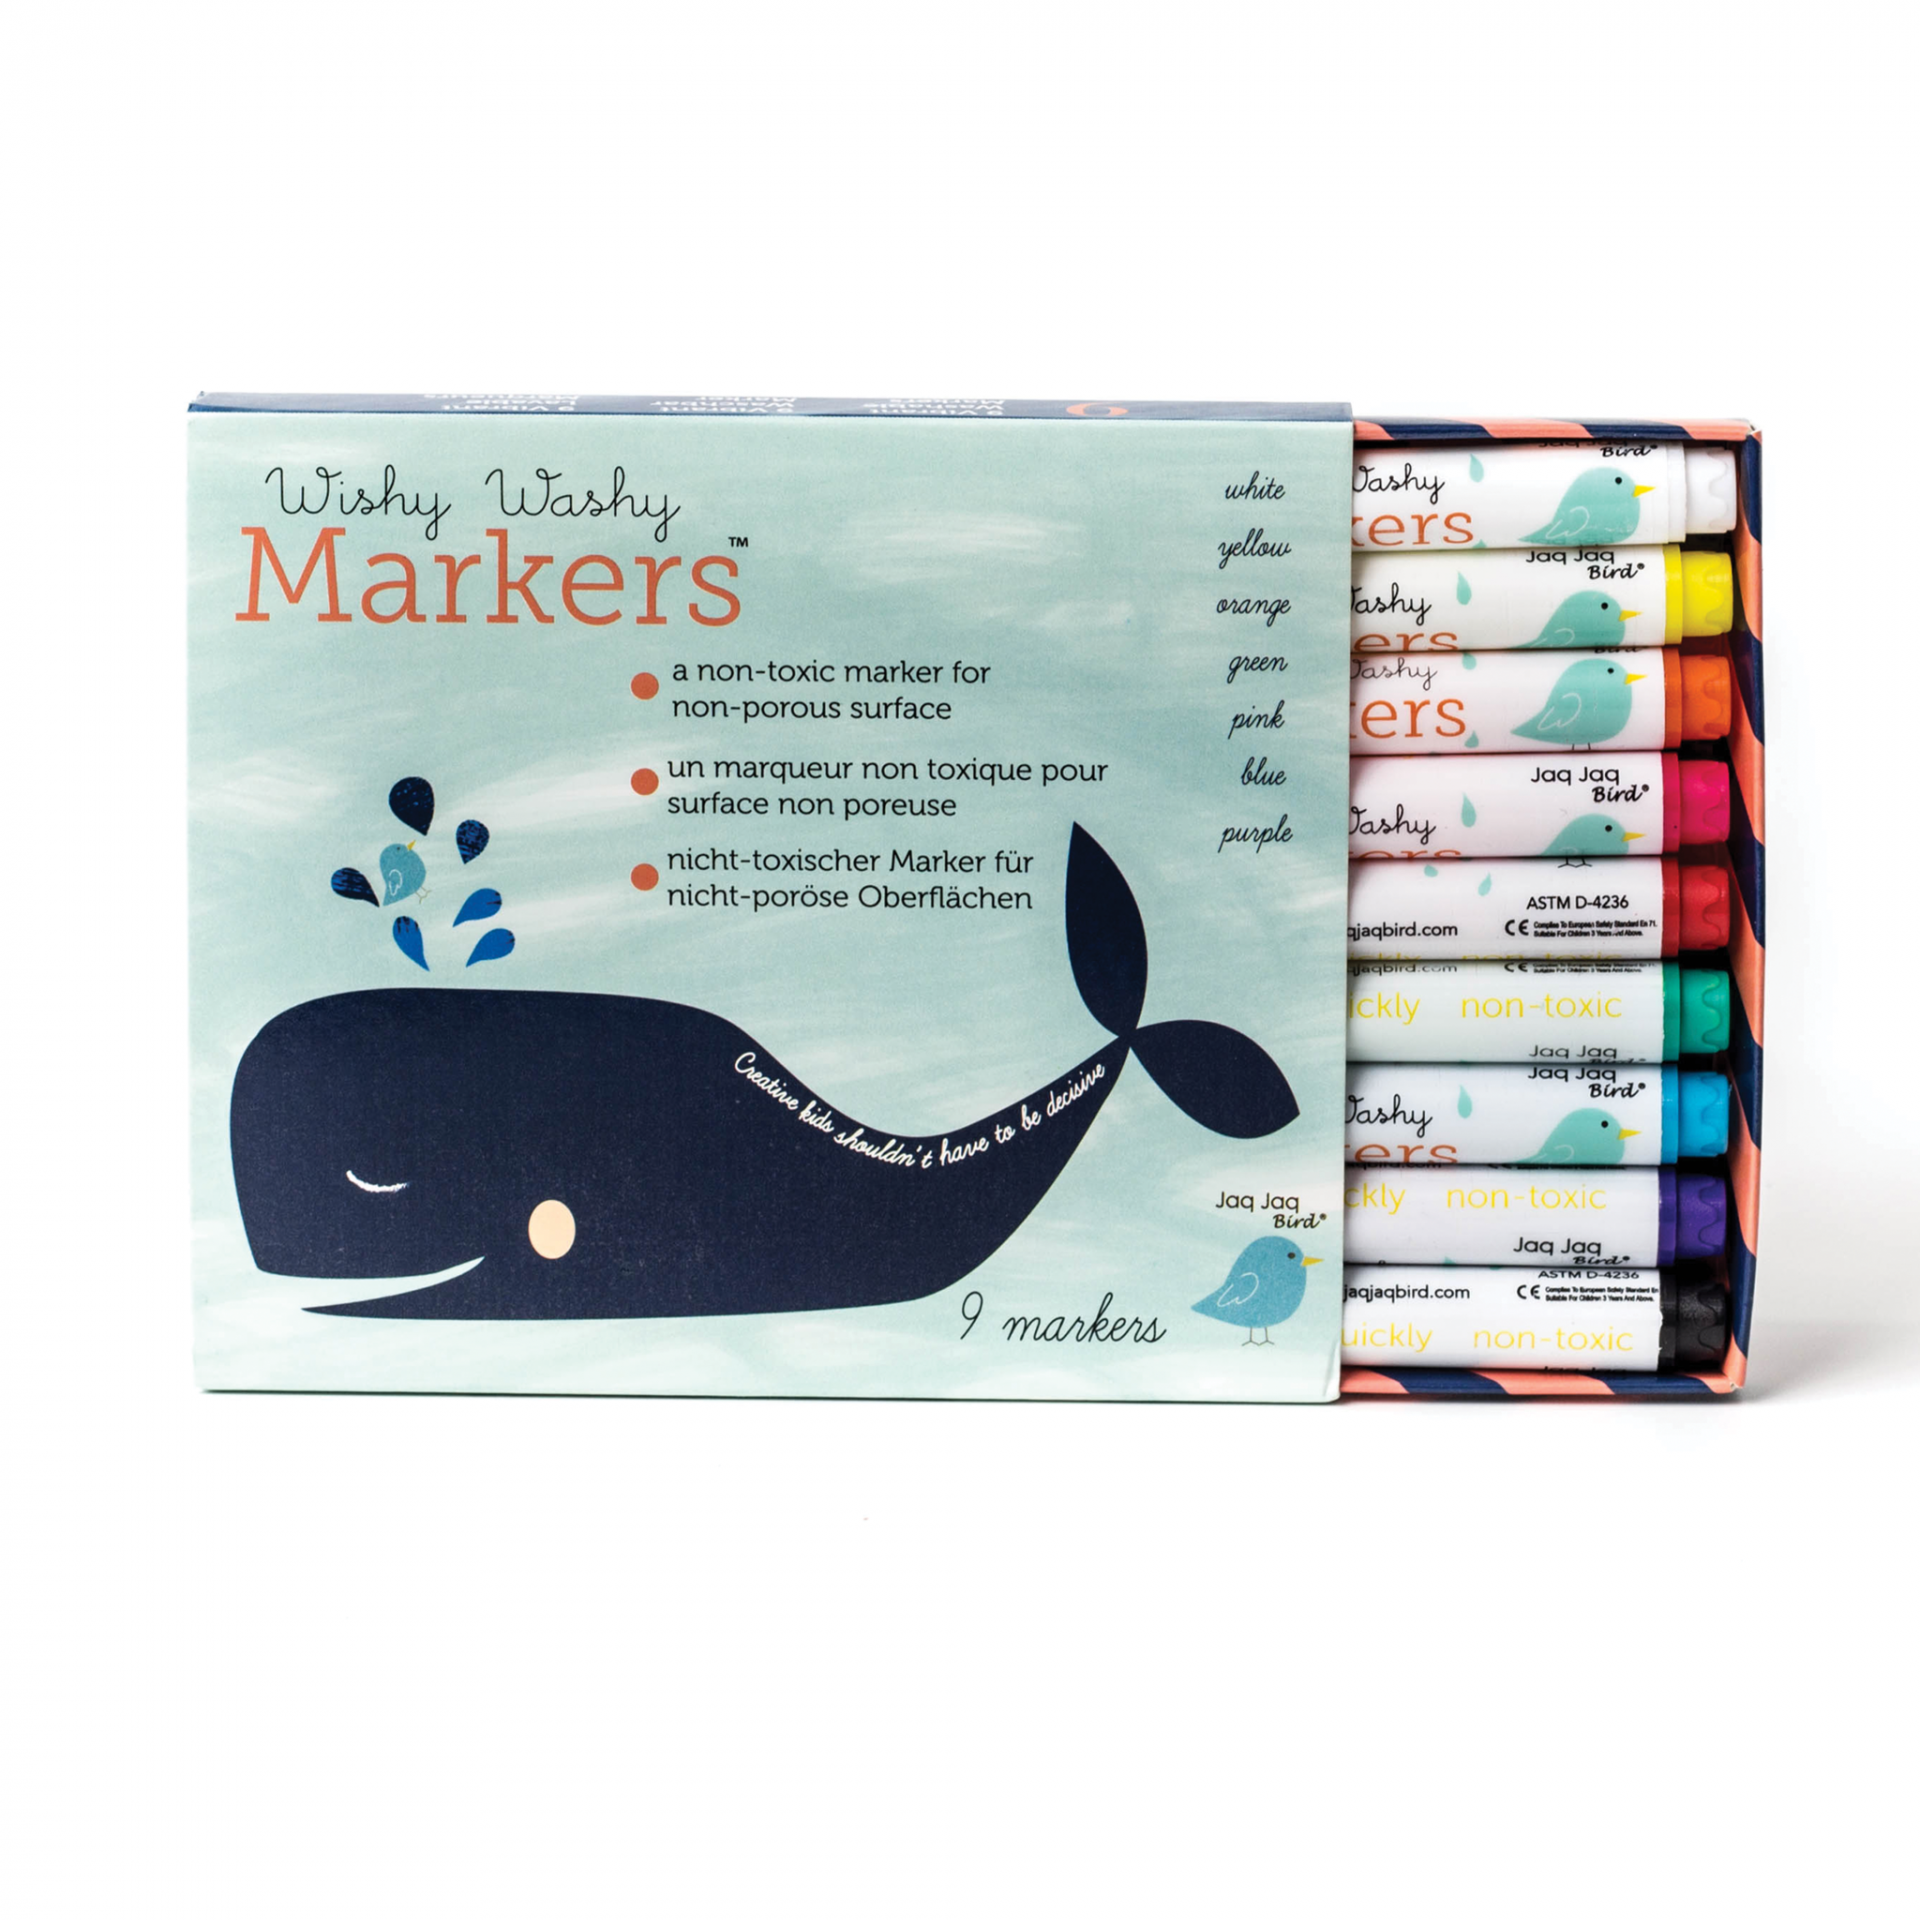 Wishy Washy Markers [marcadores 9 cores laváveis]